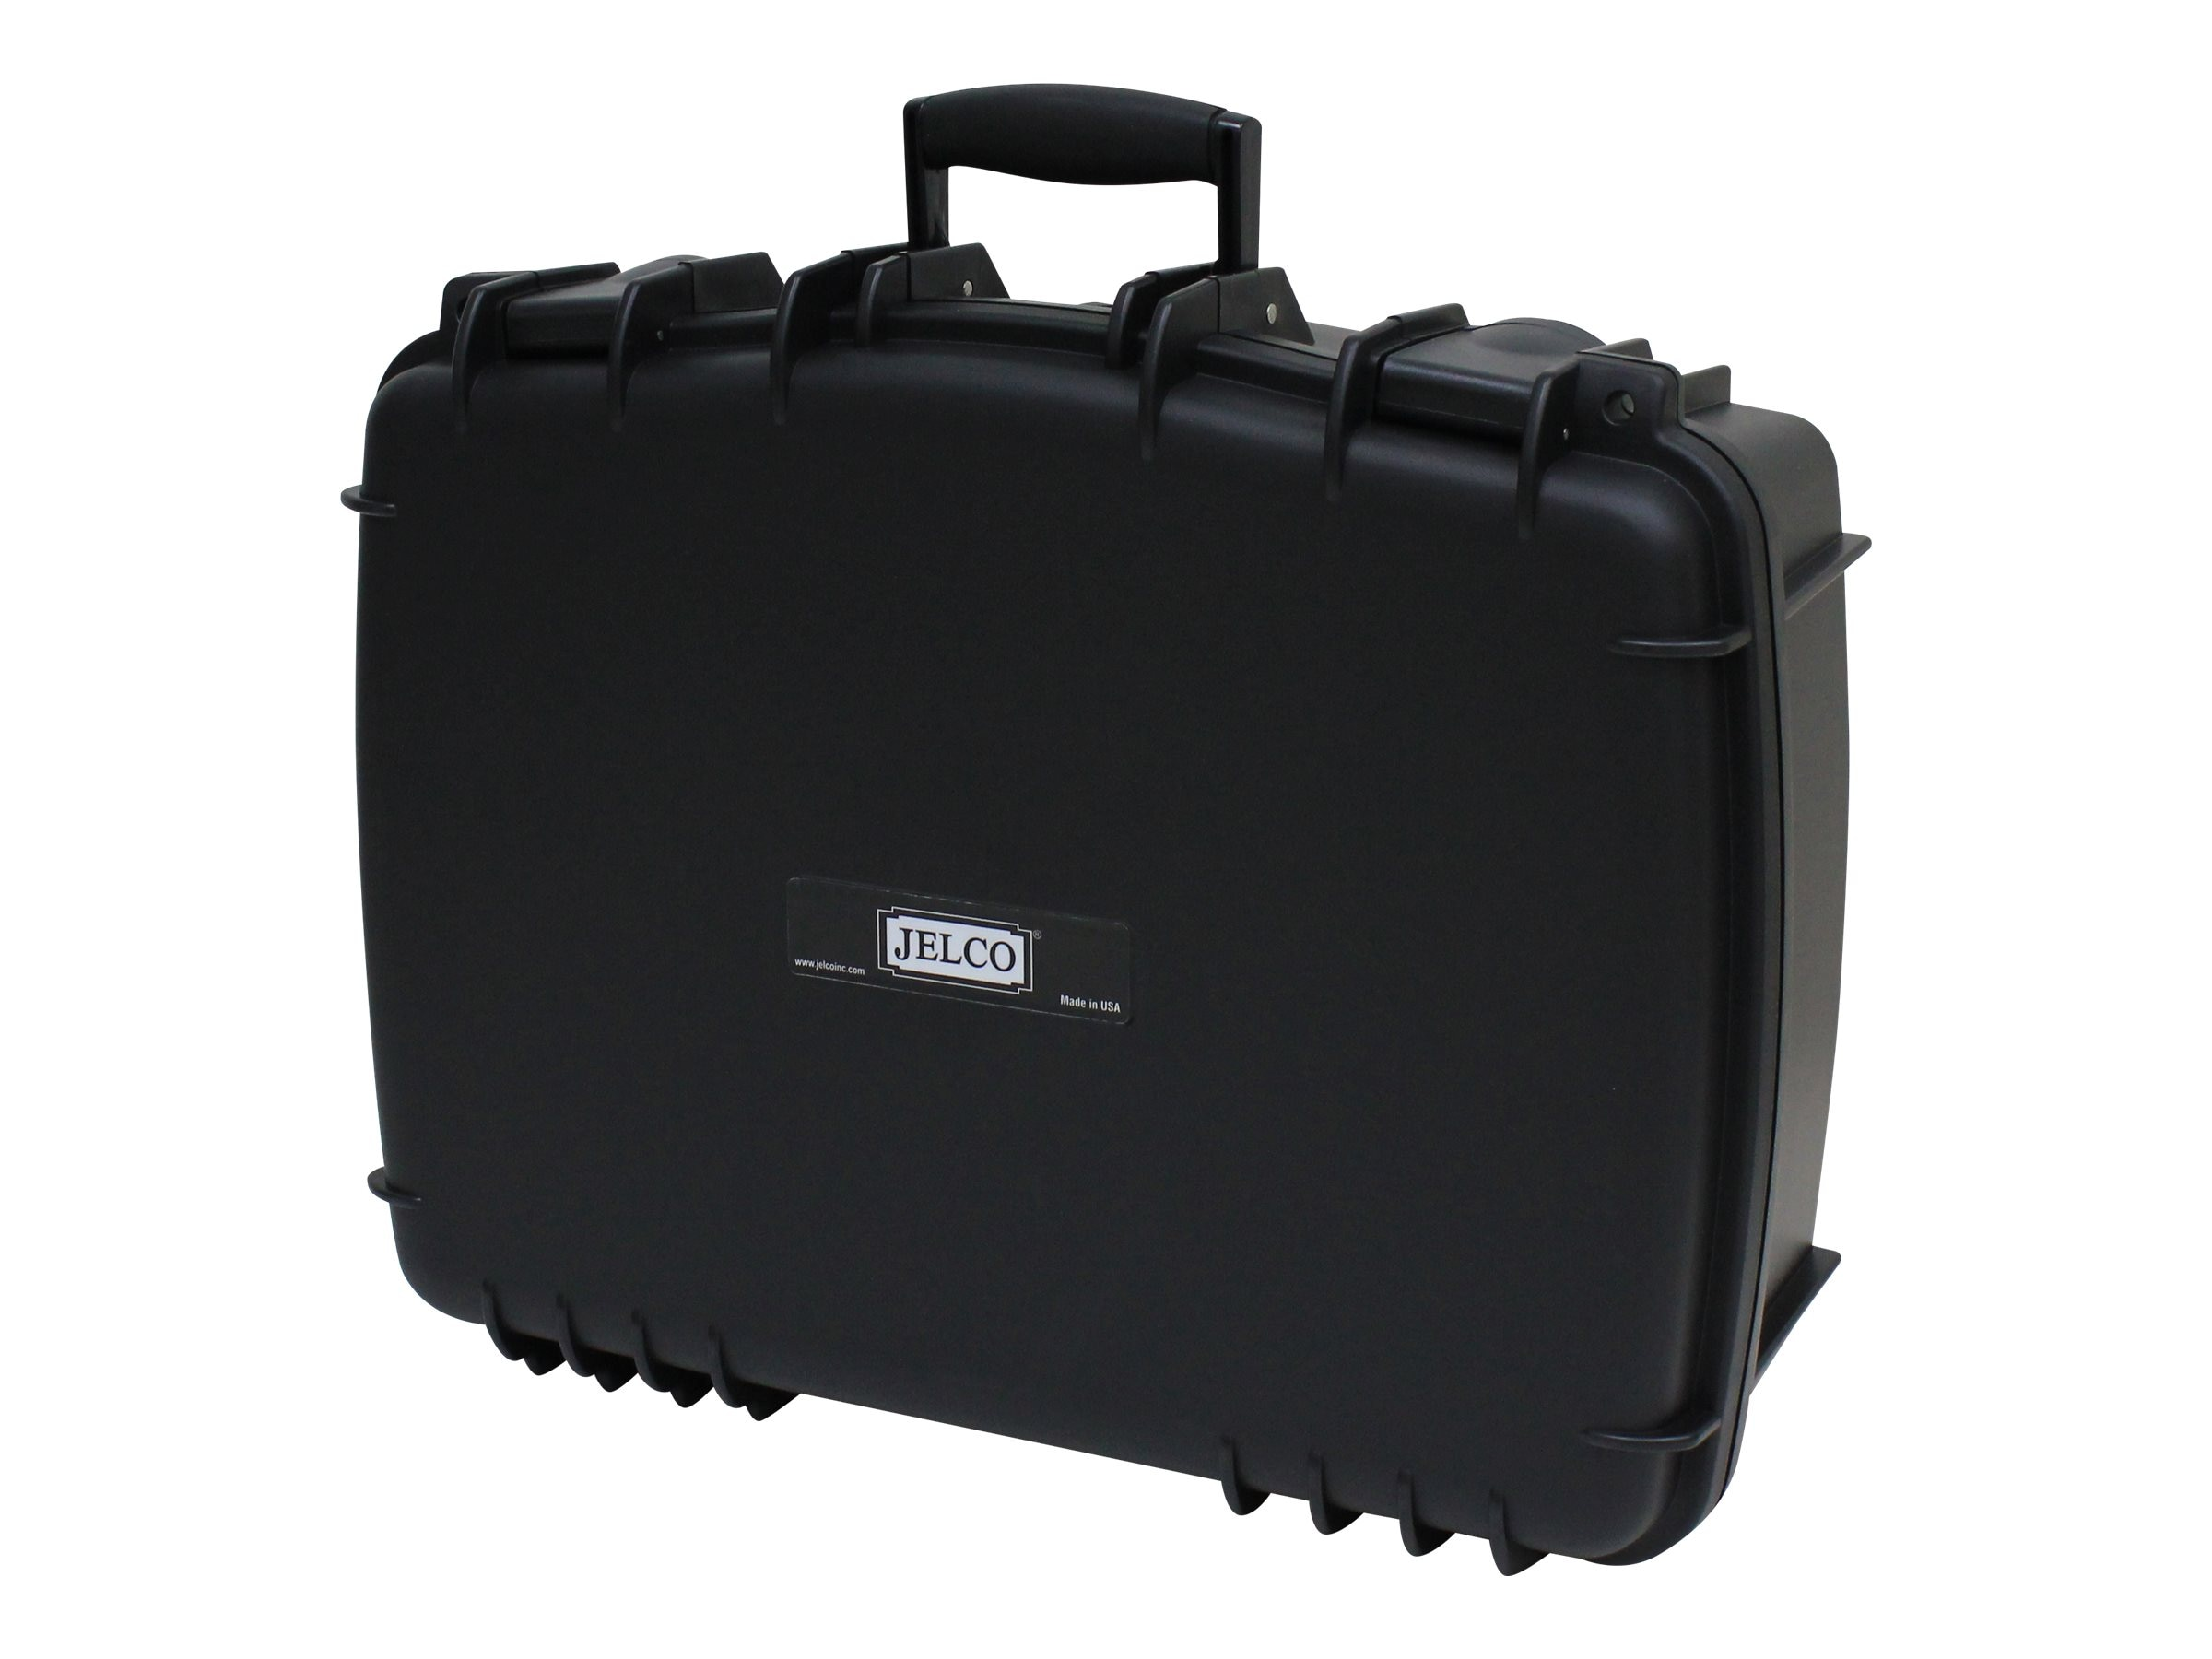 Jelco Rugged Carry Case with DIY Customizable Foam, JEL-13185MF